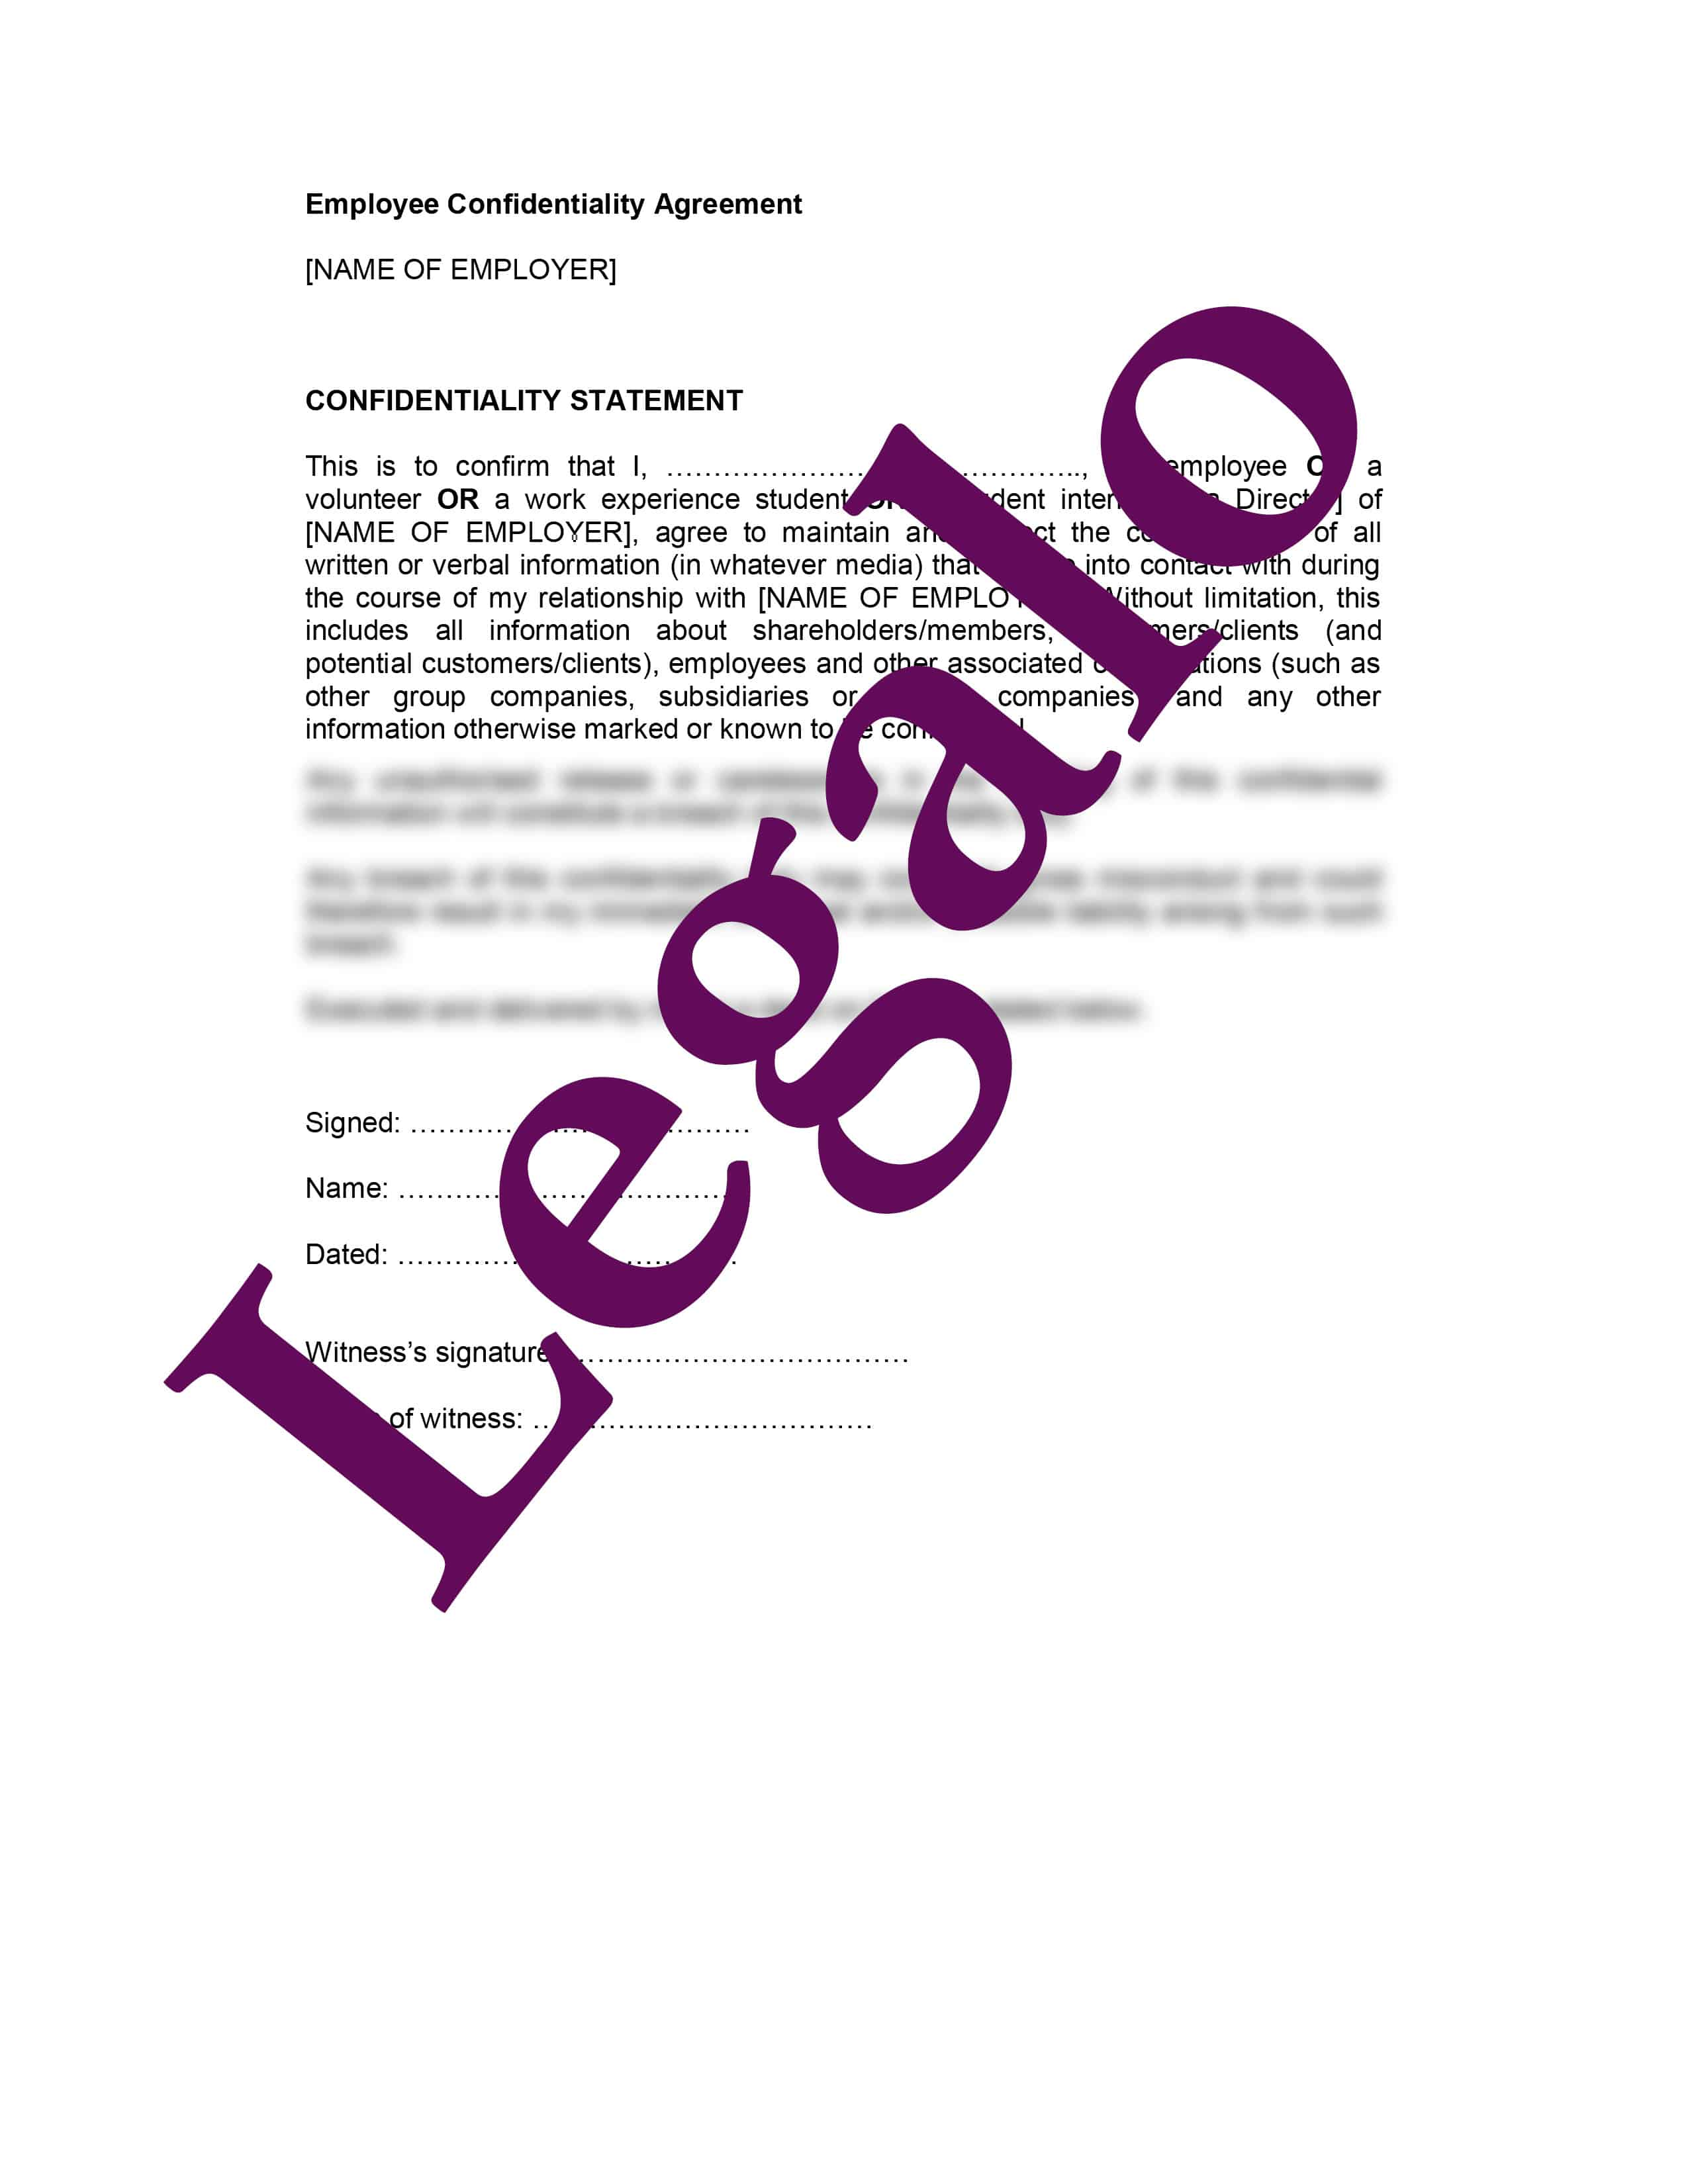 Employee Confidentiality Agreement preview 1 image